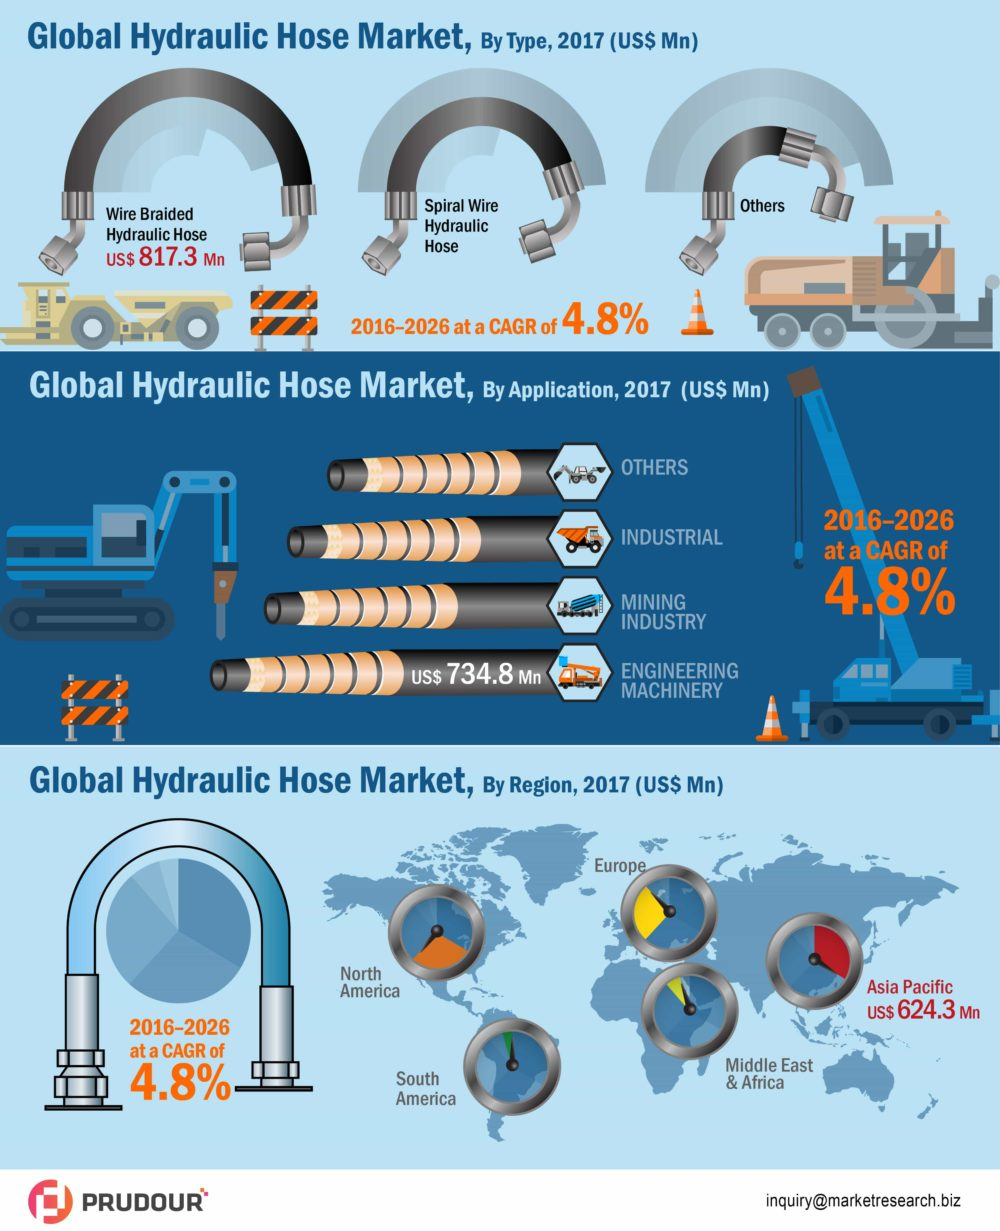 Hydraulic Hose Market Witnessed To Register A CAGR Of Over 4.8% Between 2016-2026